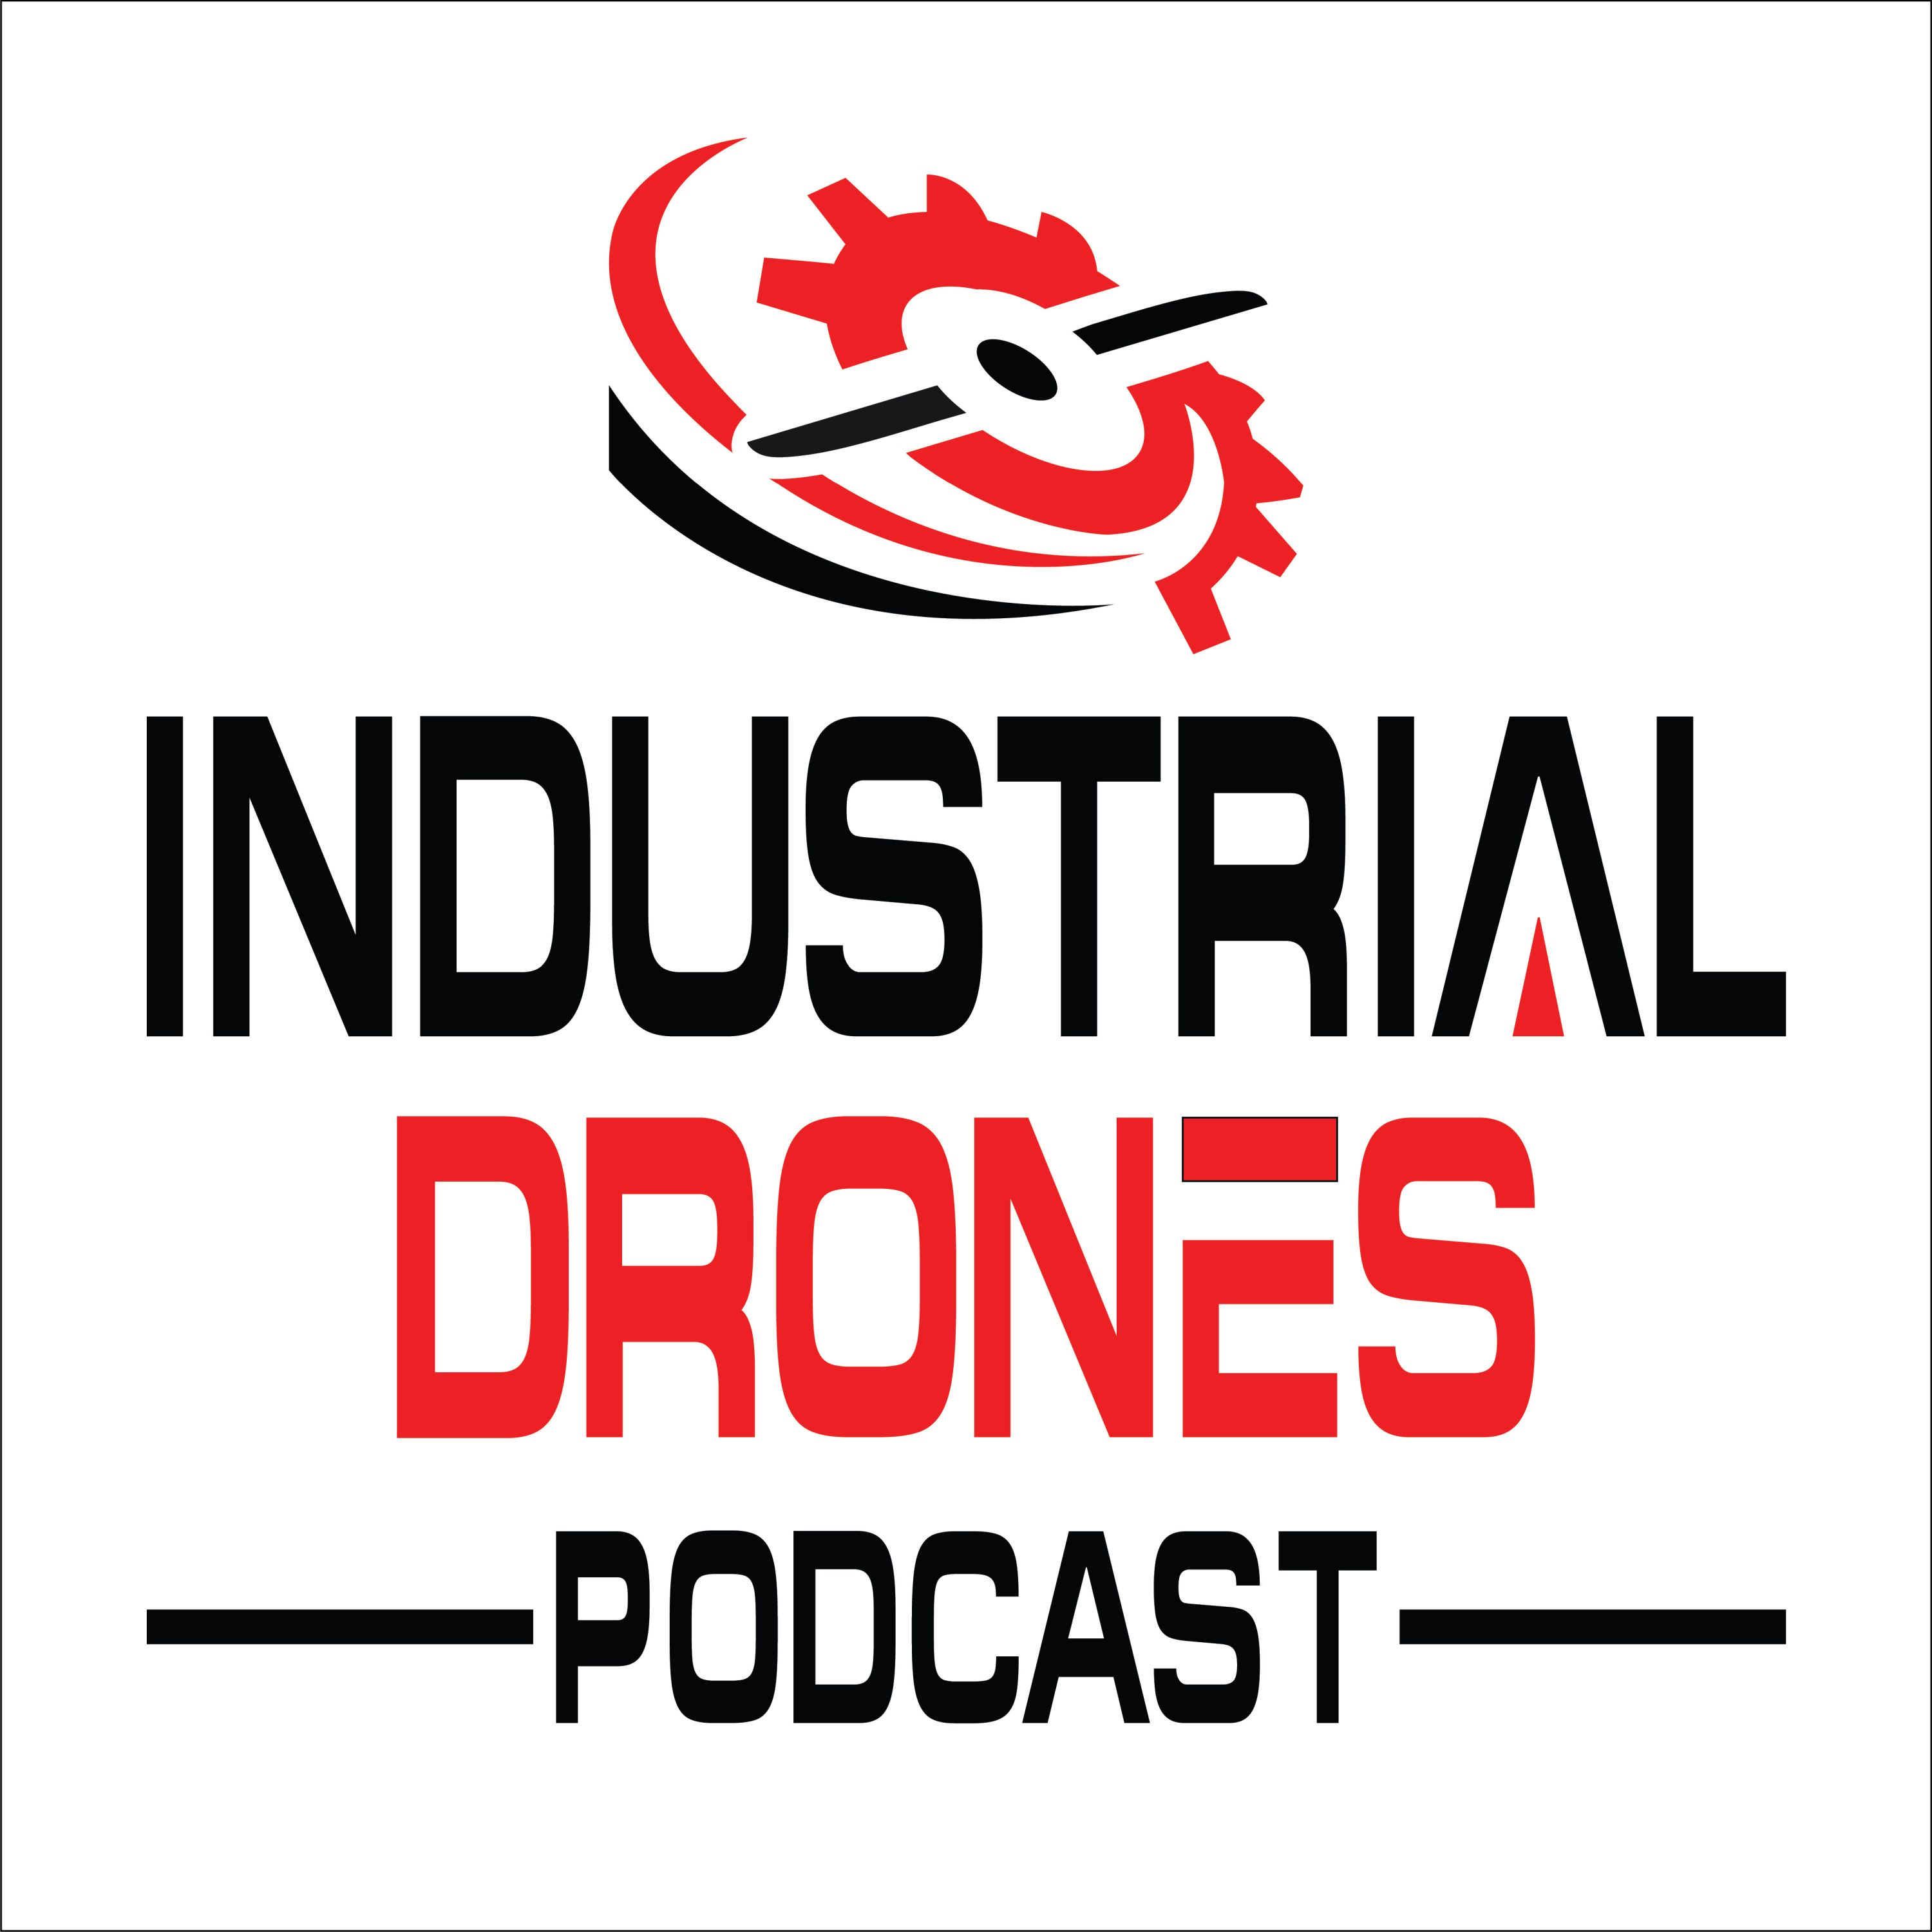 Industrial Drones Podcast